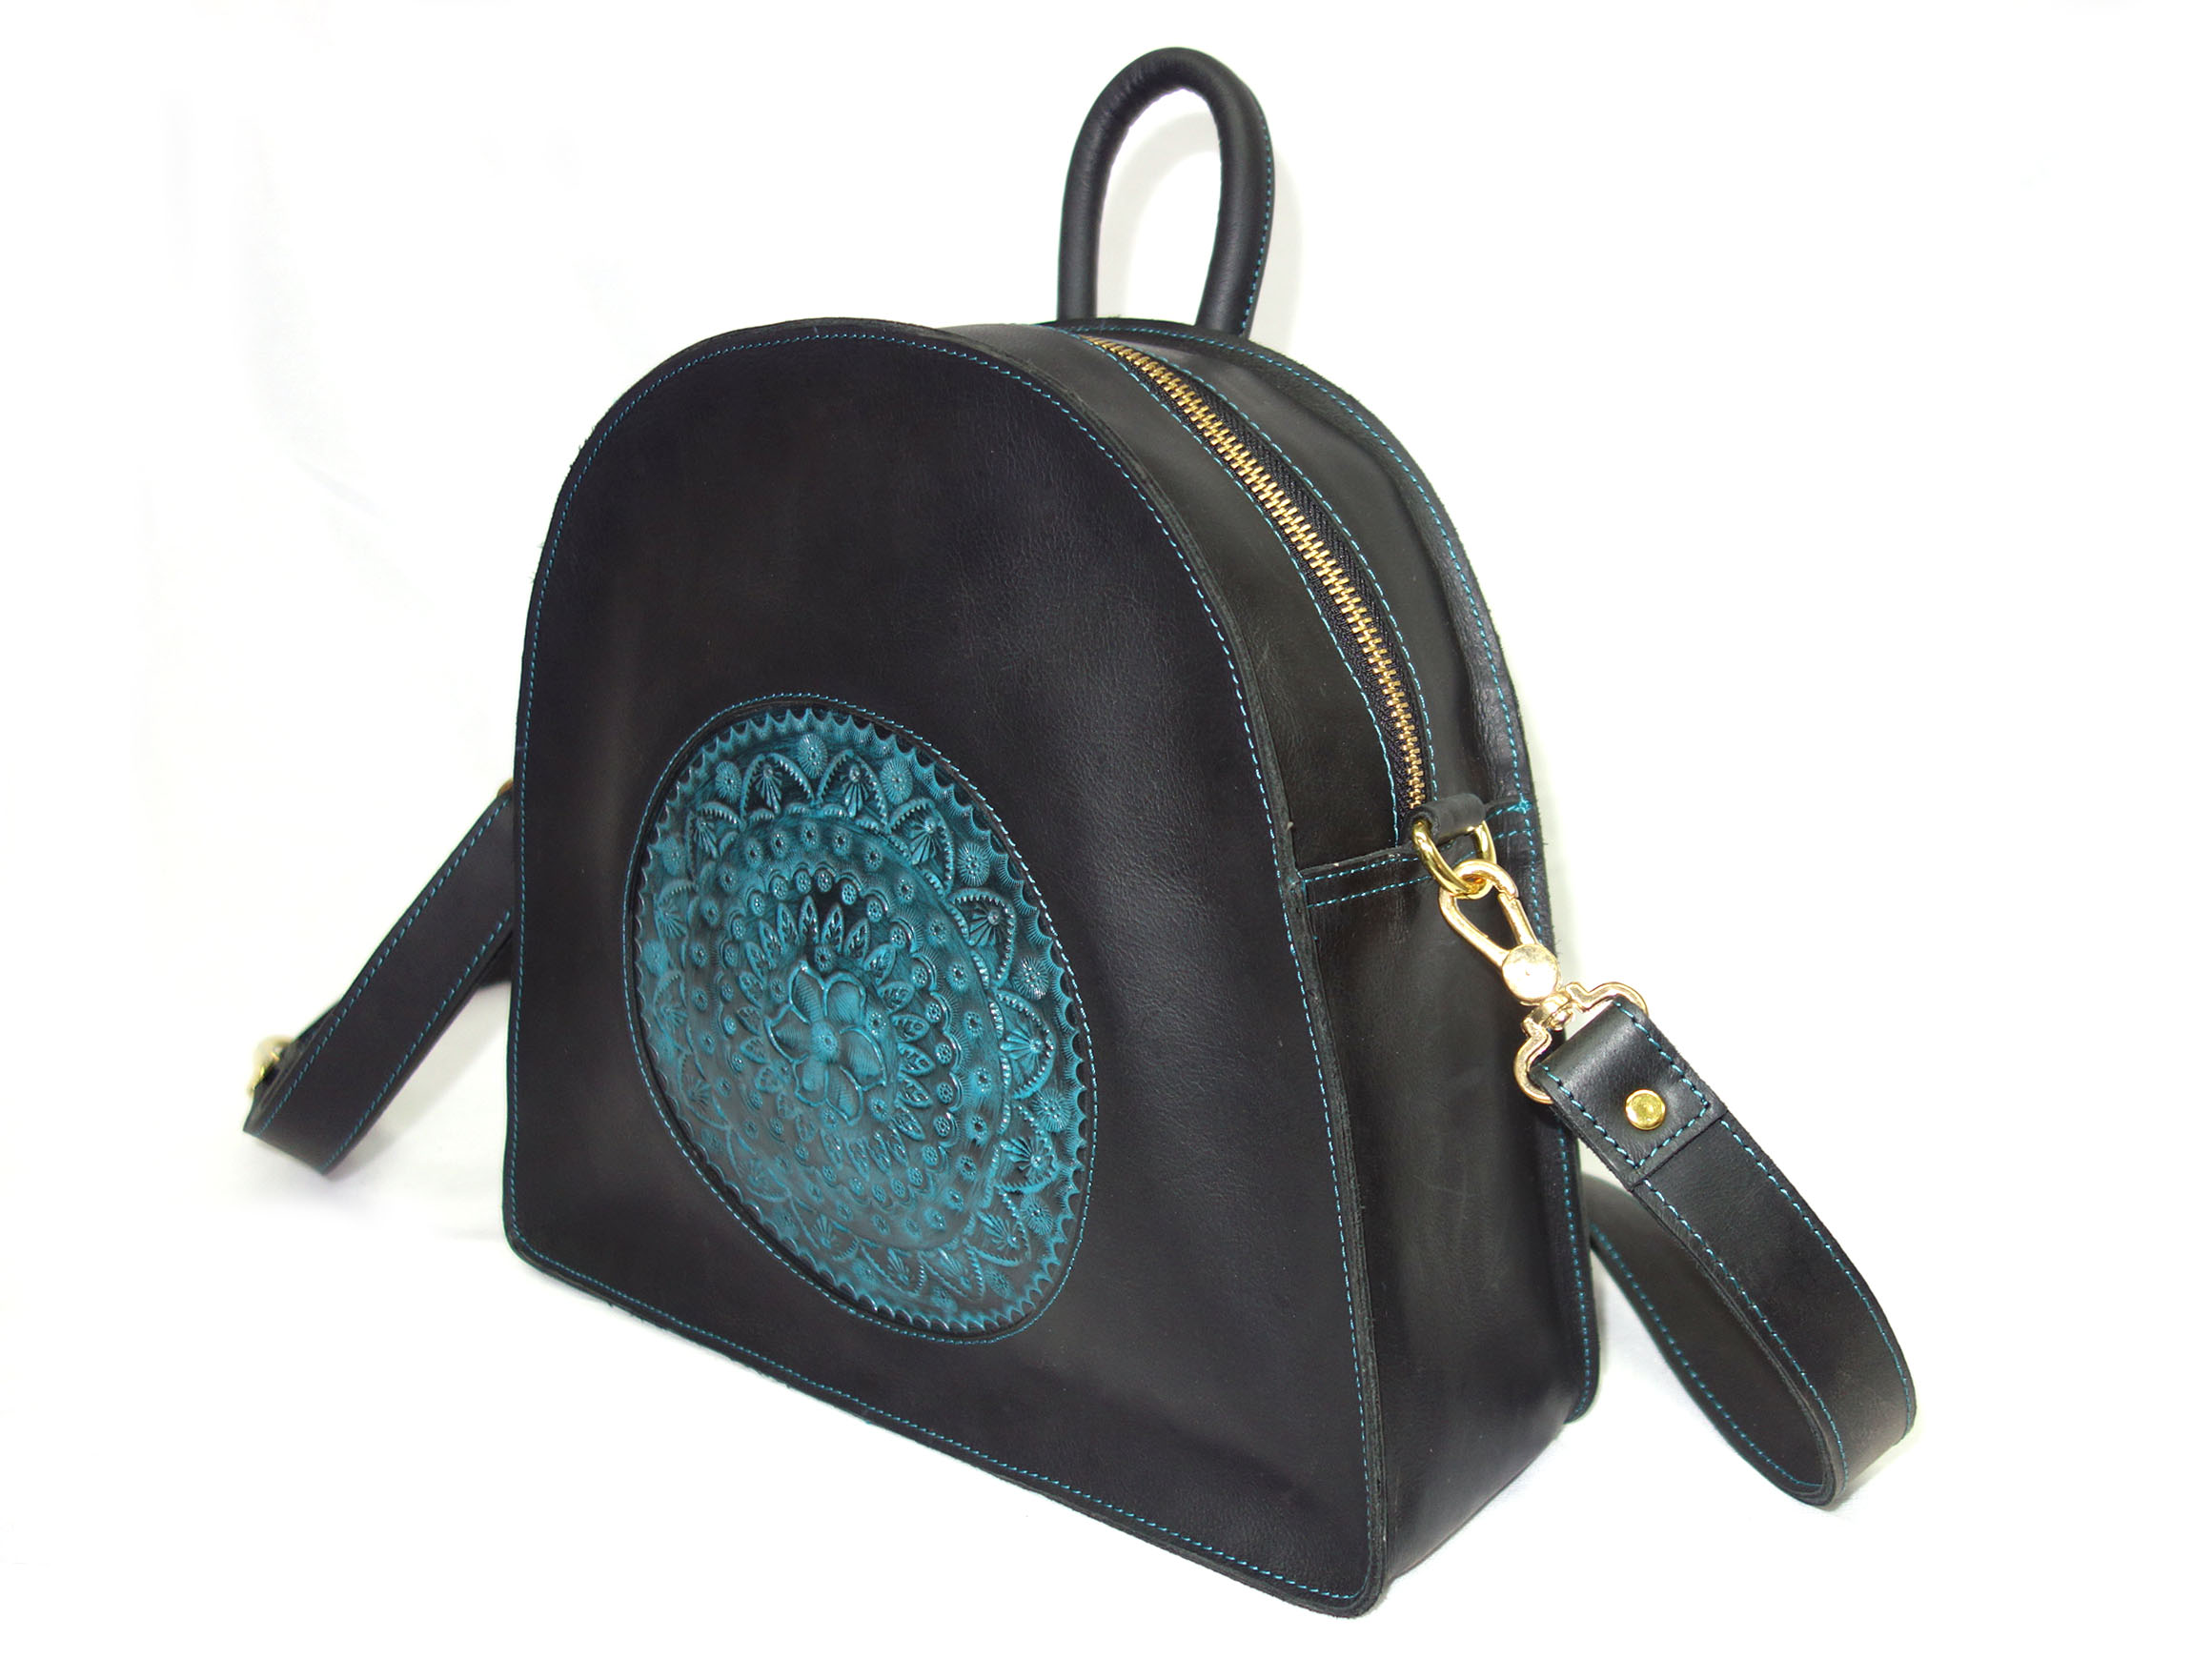 Leather Bag, Back Pack Hand Crafted and Color with Shoulder Strap for Woman Vintage Finish (Black)